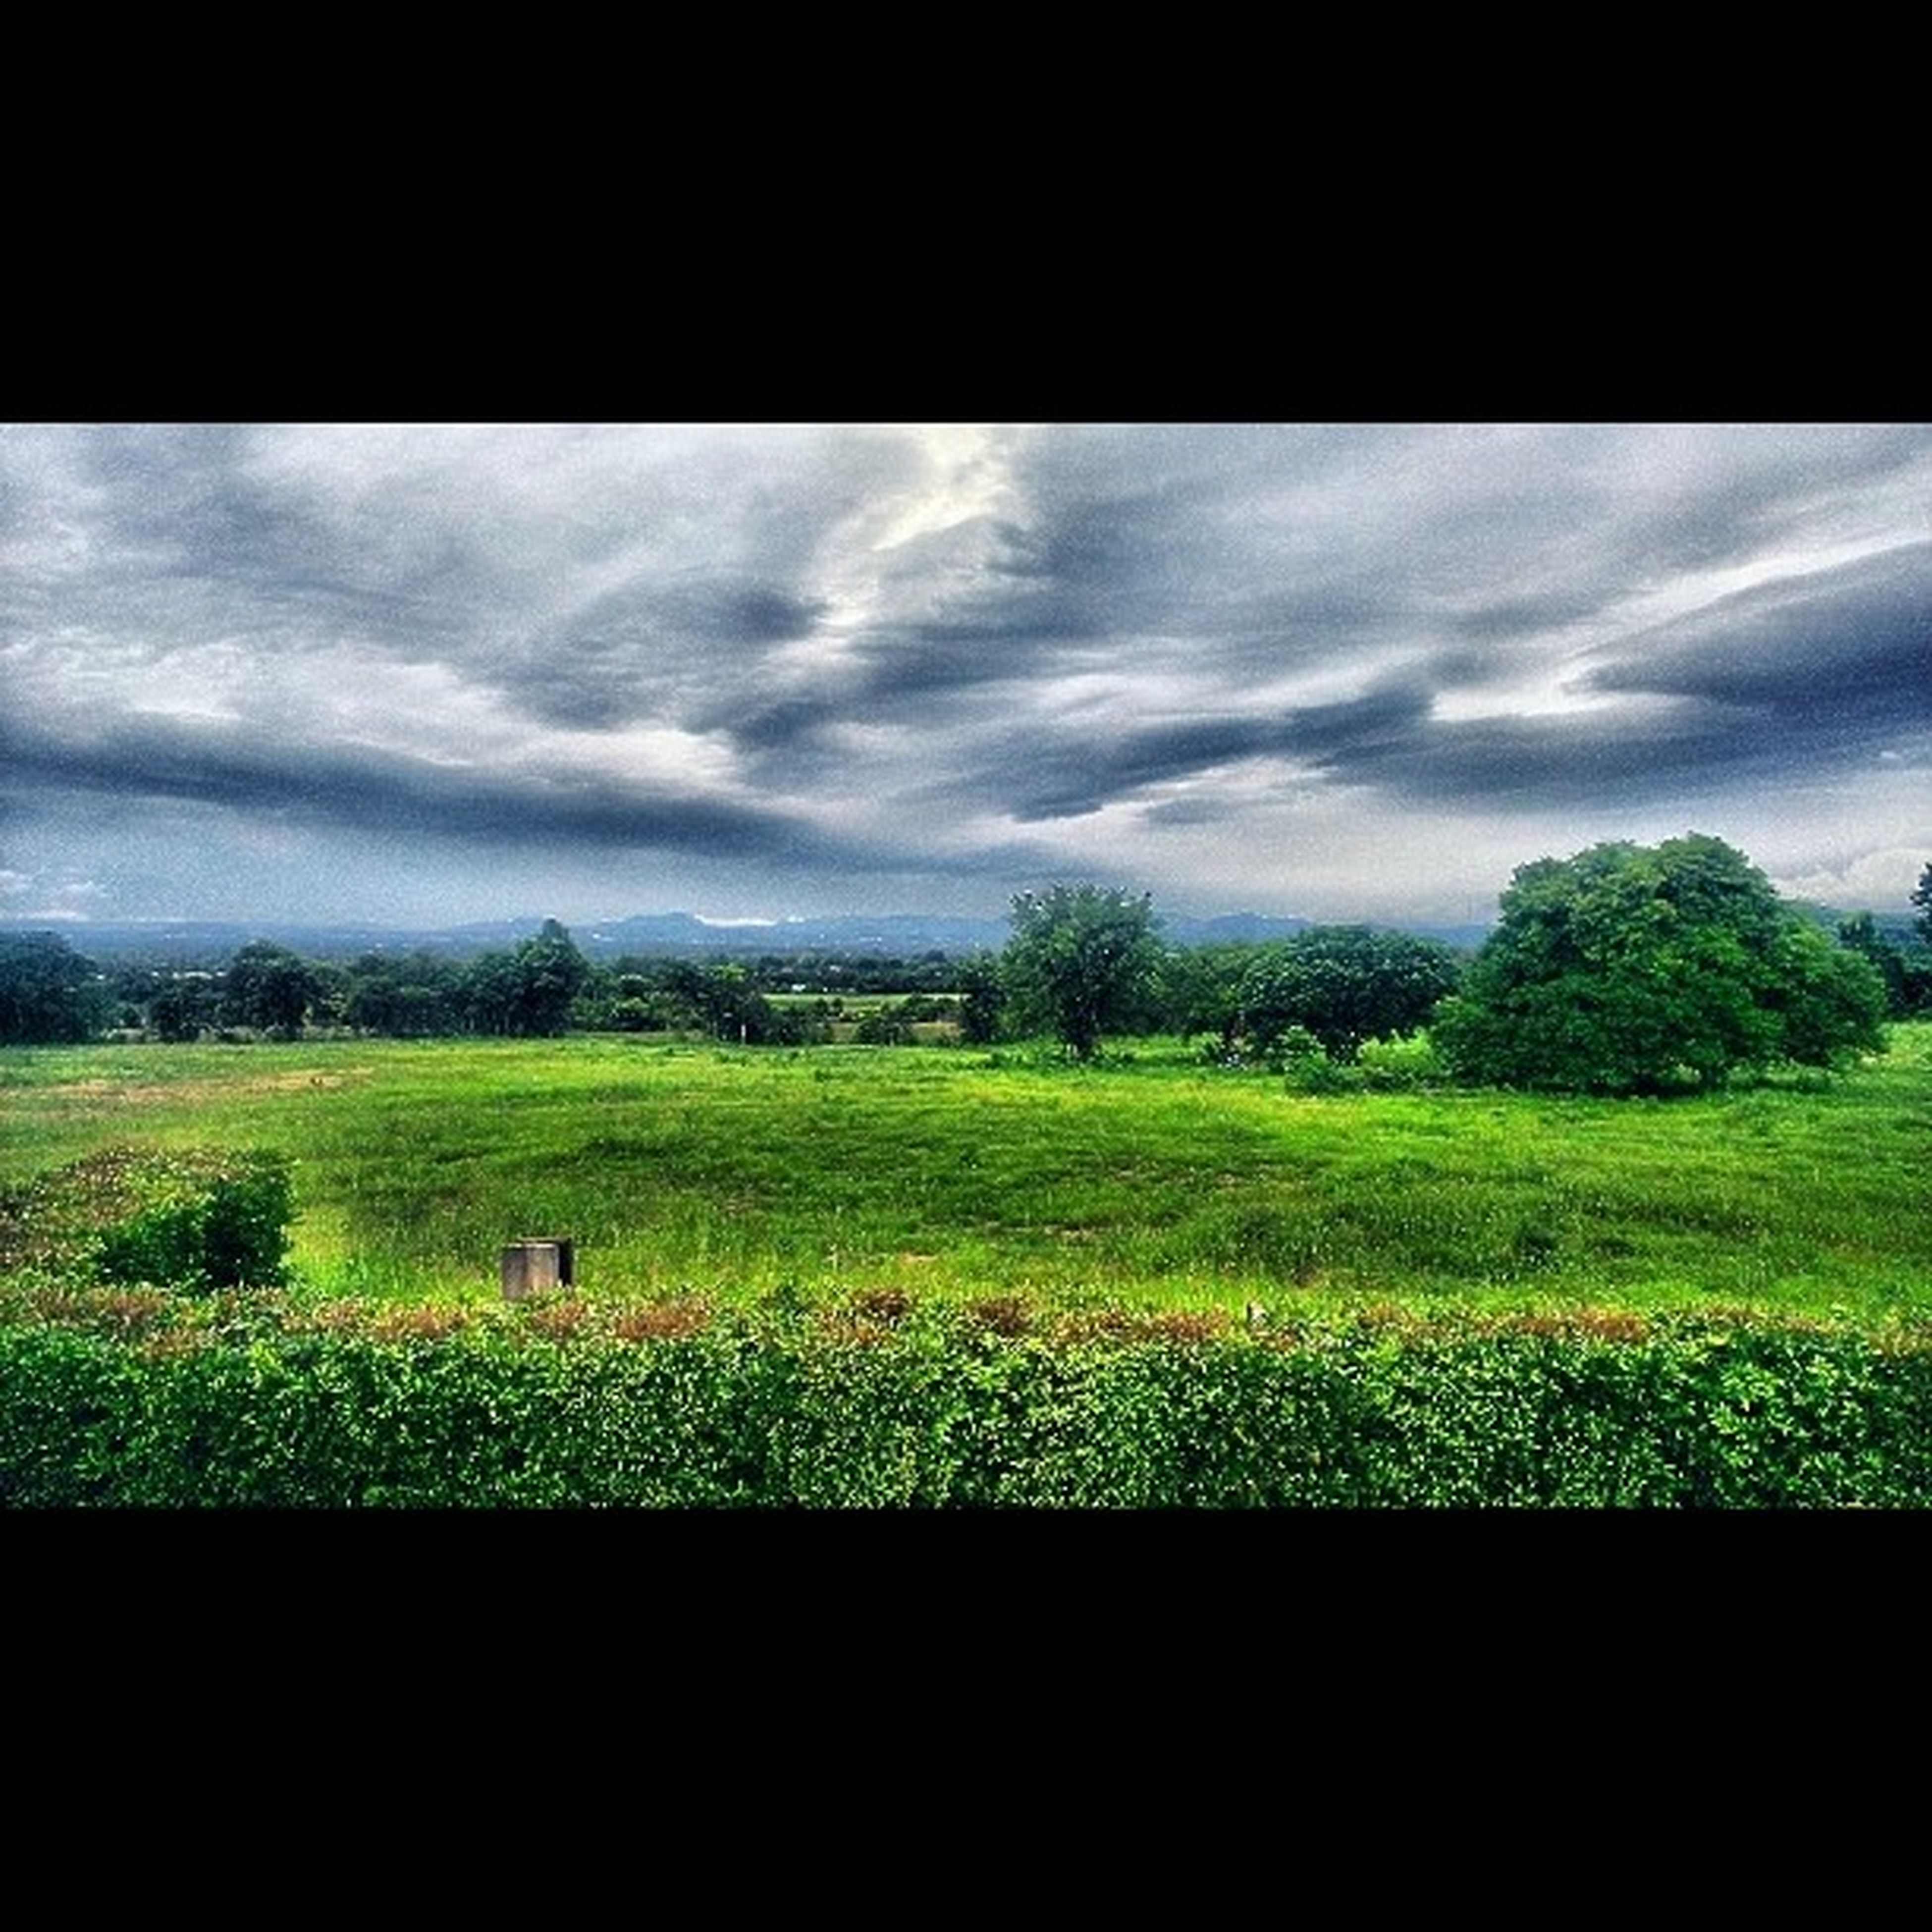 sky, field, landscape, transfer print, tranquil scene, growth, beauty in nature, tranquility, tree, nature, rural scene, cloud - sky, scenics, green color, auto post production filter, cloud, agriculture, plant, grass, cloudy